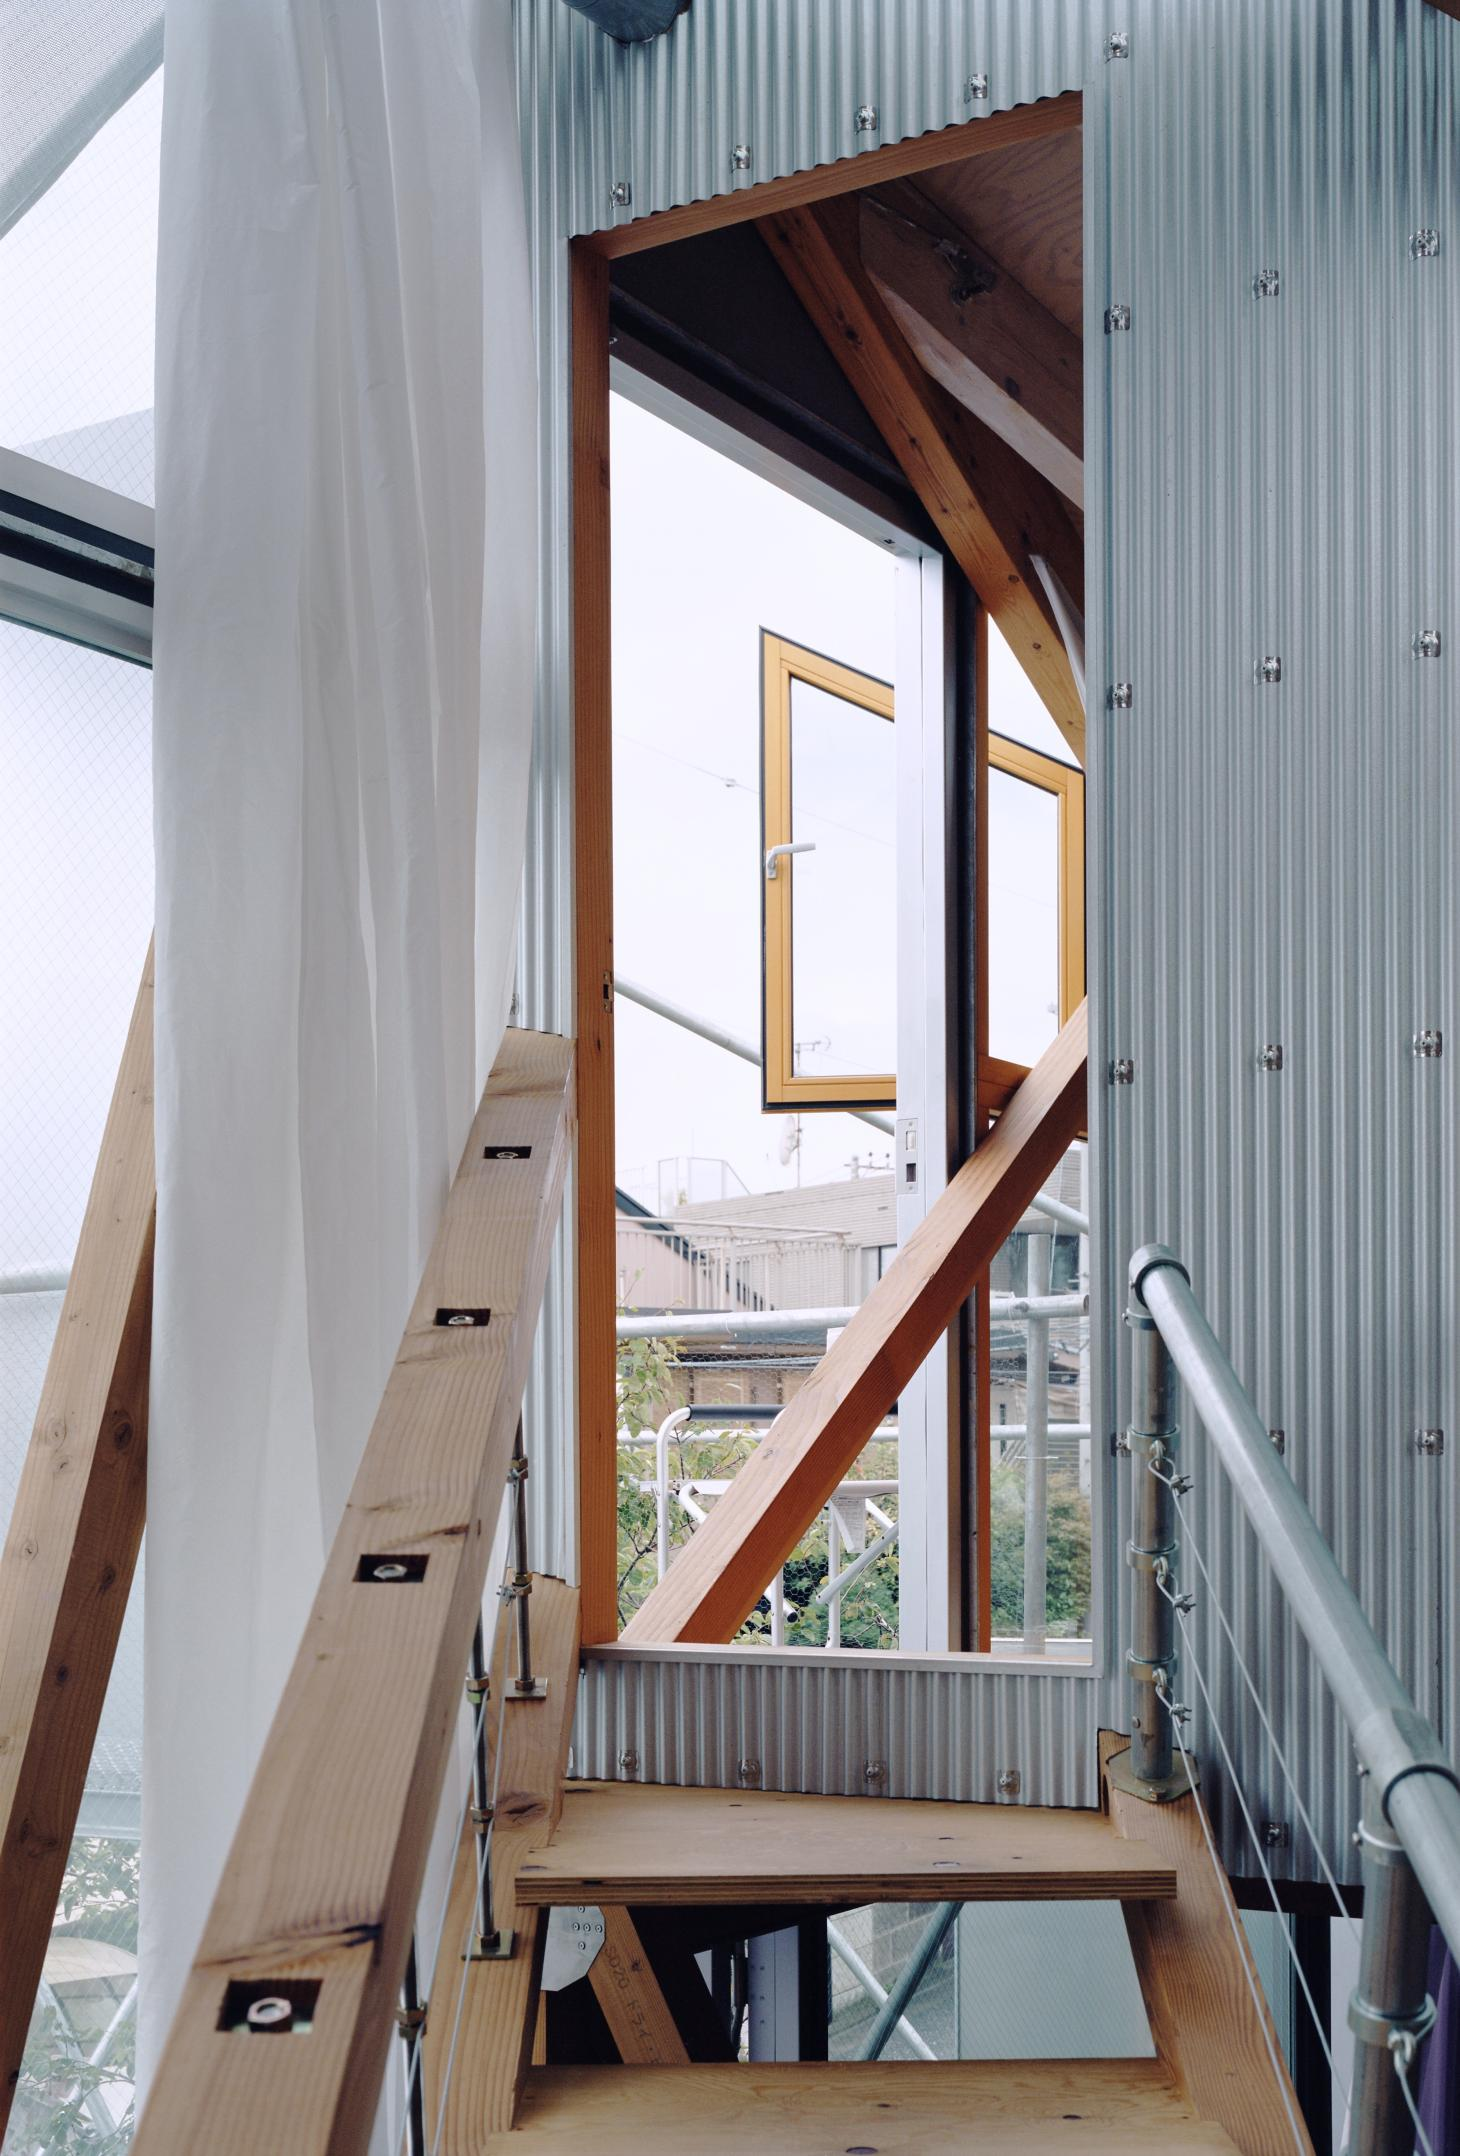 detail of the detail structure at Daita2019, a Japanese house